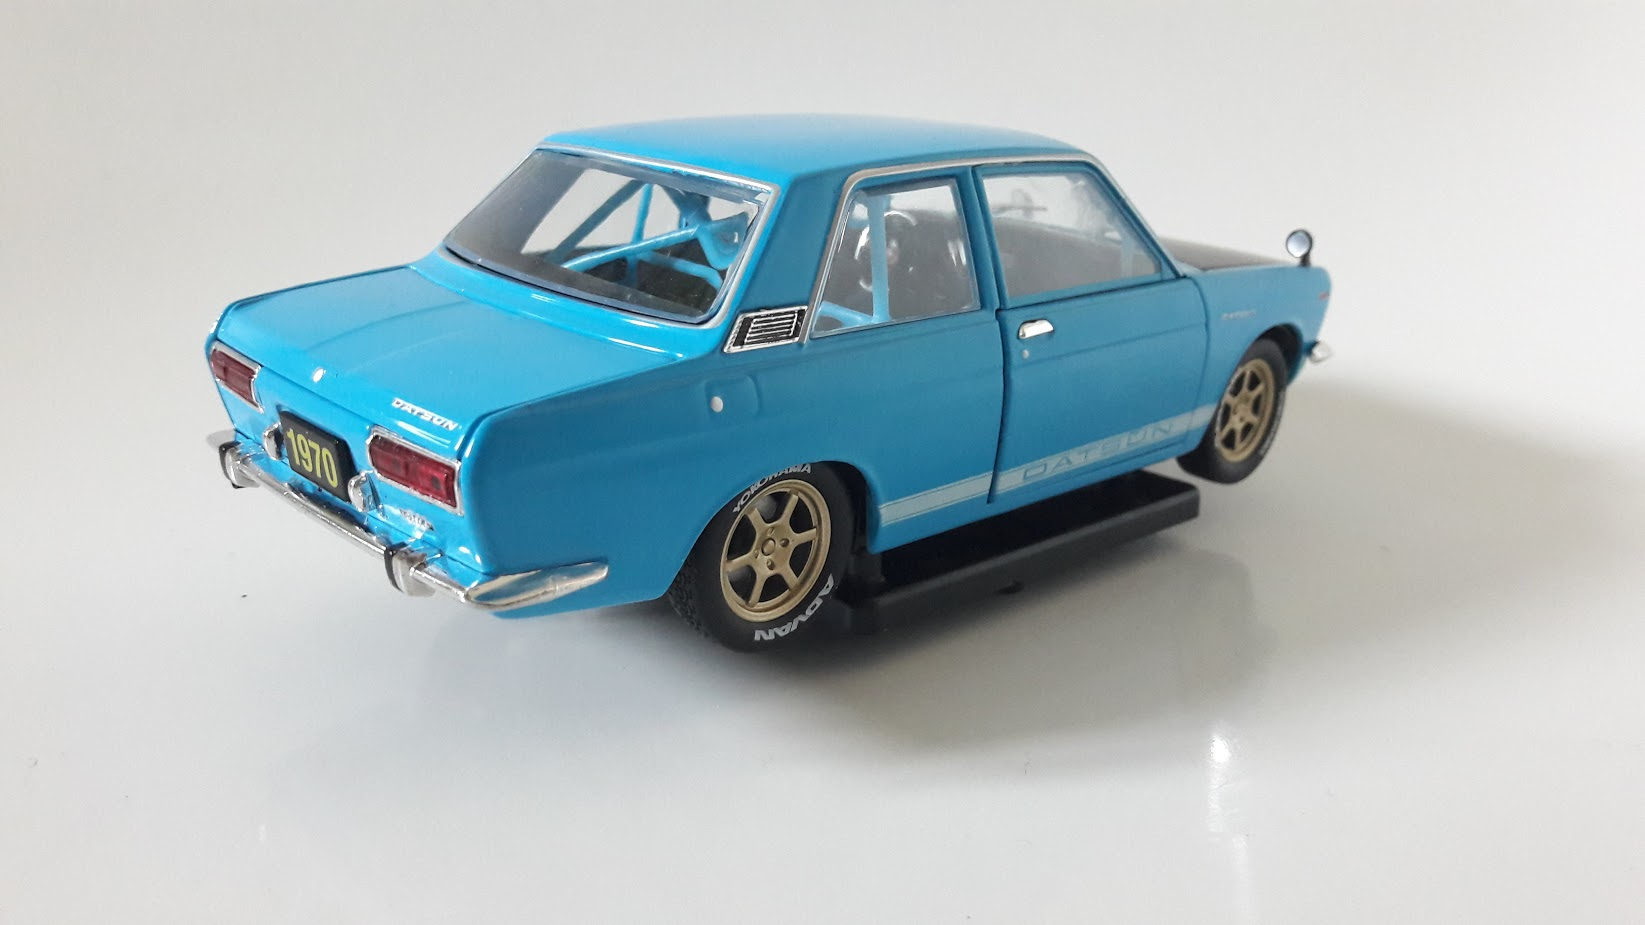 Datsun 510 Toy Car, Die Cast, And Hot Wheels - Japan version (1970) back image (back cover, second image)